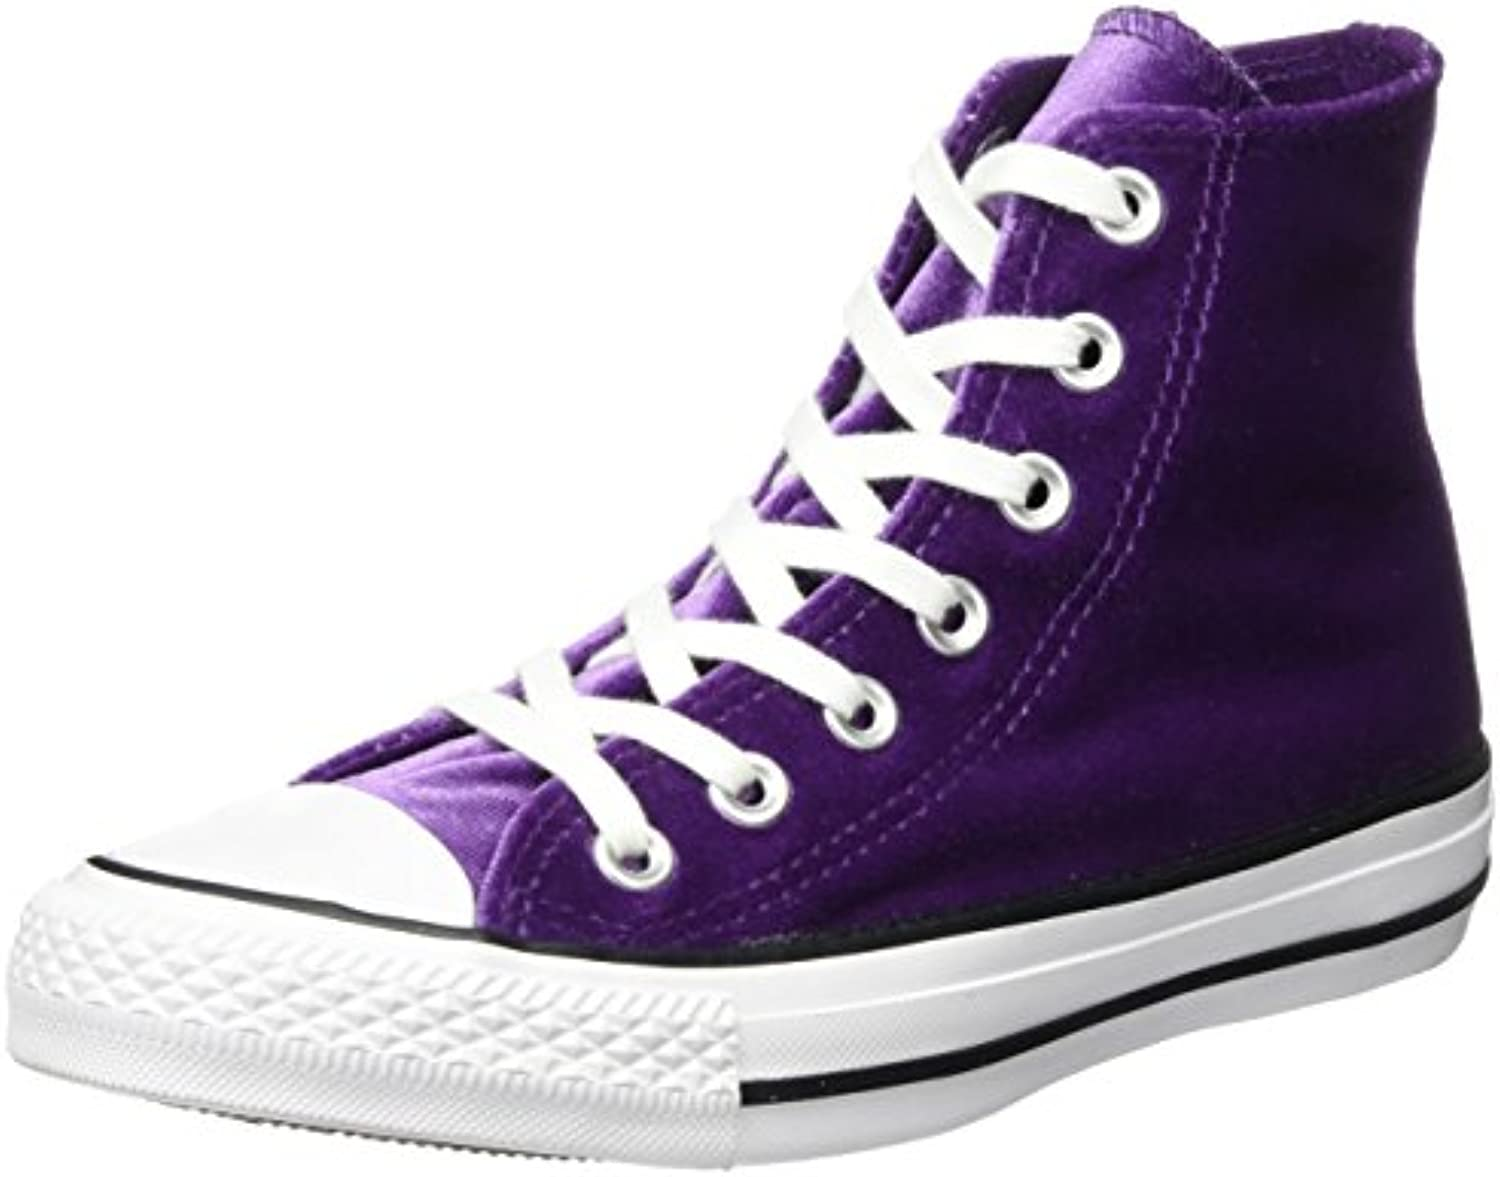 Converse CTAS Hi Night Purple White, Zapatillas Altas Unisex Adulto -